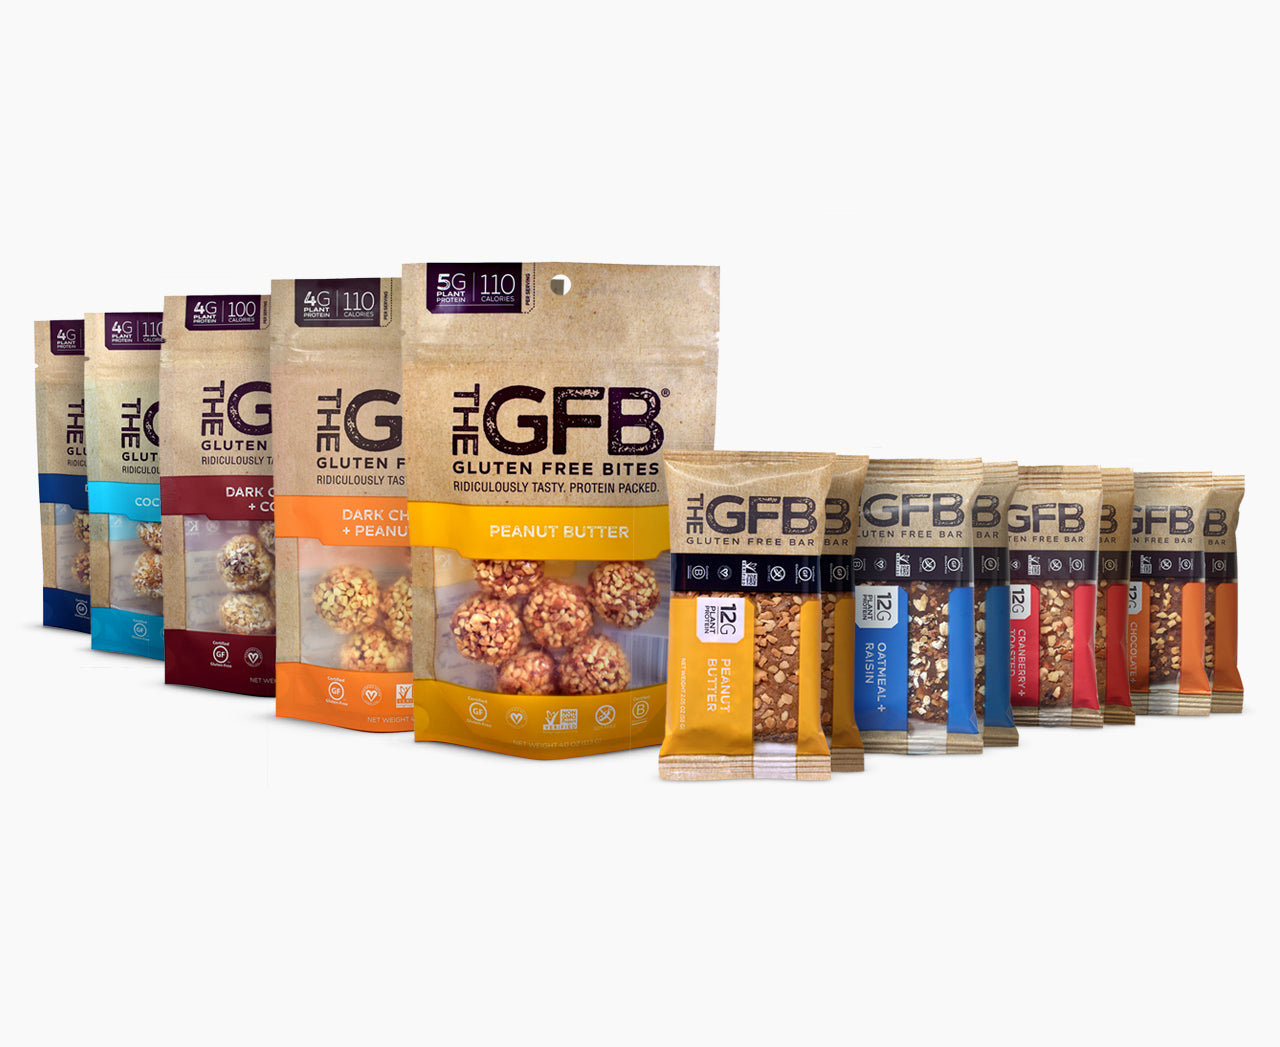 GFB Sampler Pack: Best Sellers - The GFB - The Gluten Free Bar